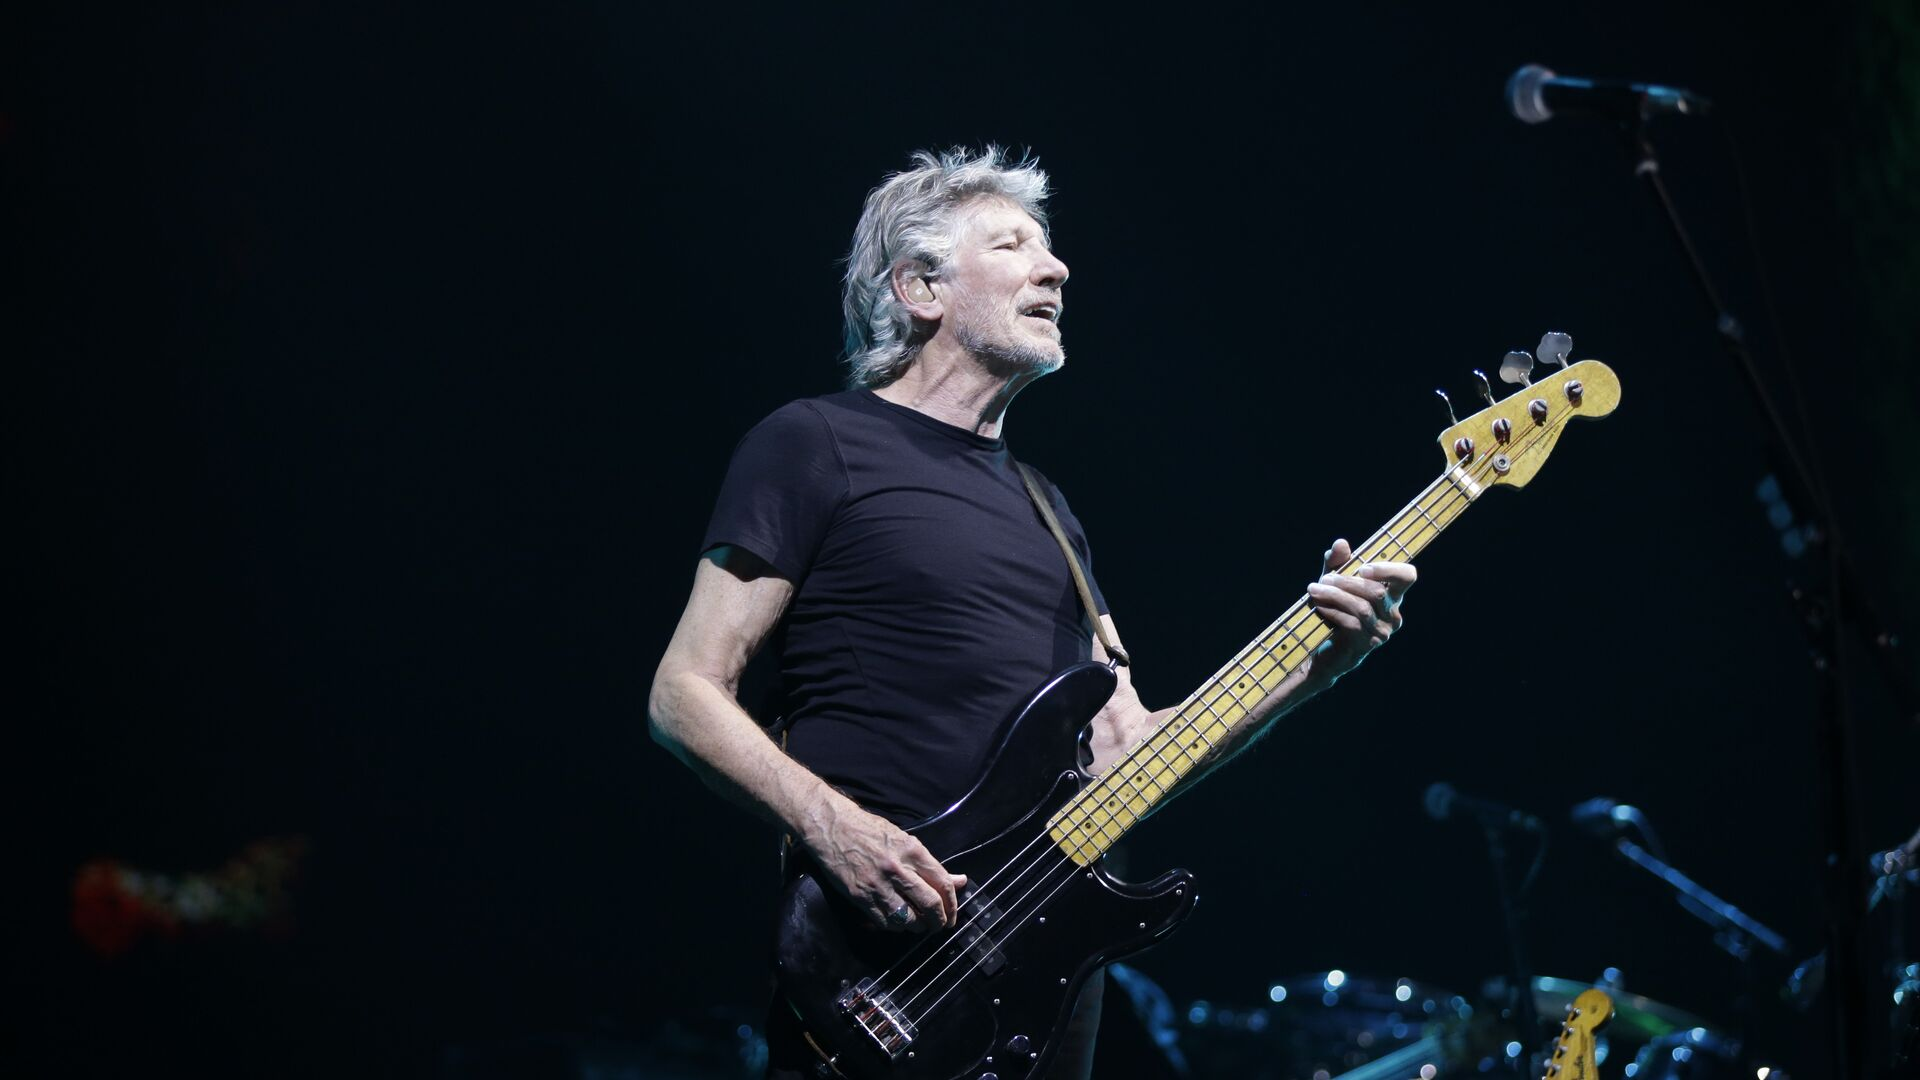 Roger Waters performs during a live concert in Assago, near Milan, Italy - Sputnik Italia, 1920, 14.06.2021